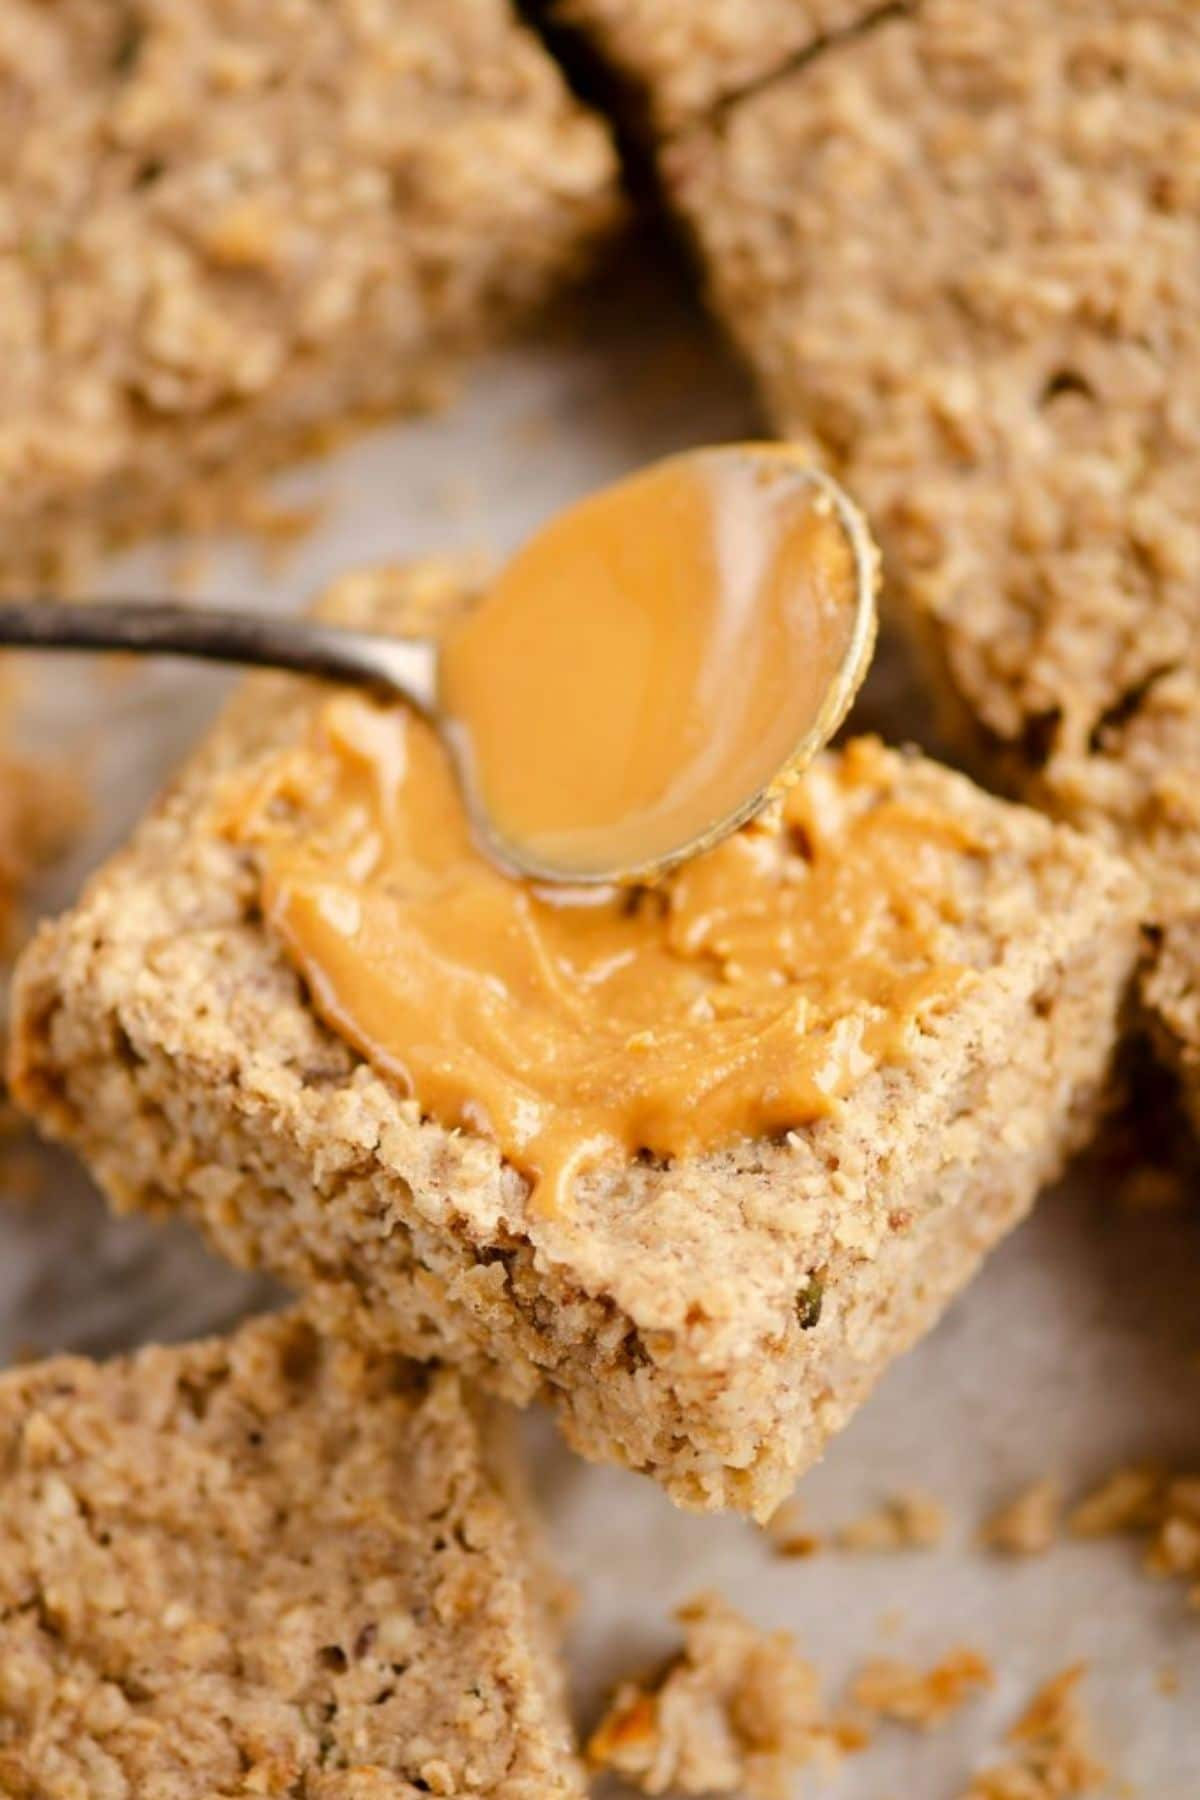 Spreading a spoon of peanut butter onto square oatmeal bar